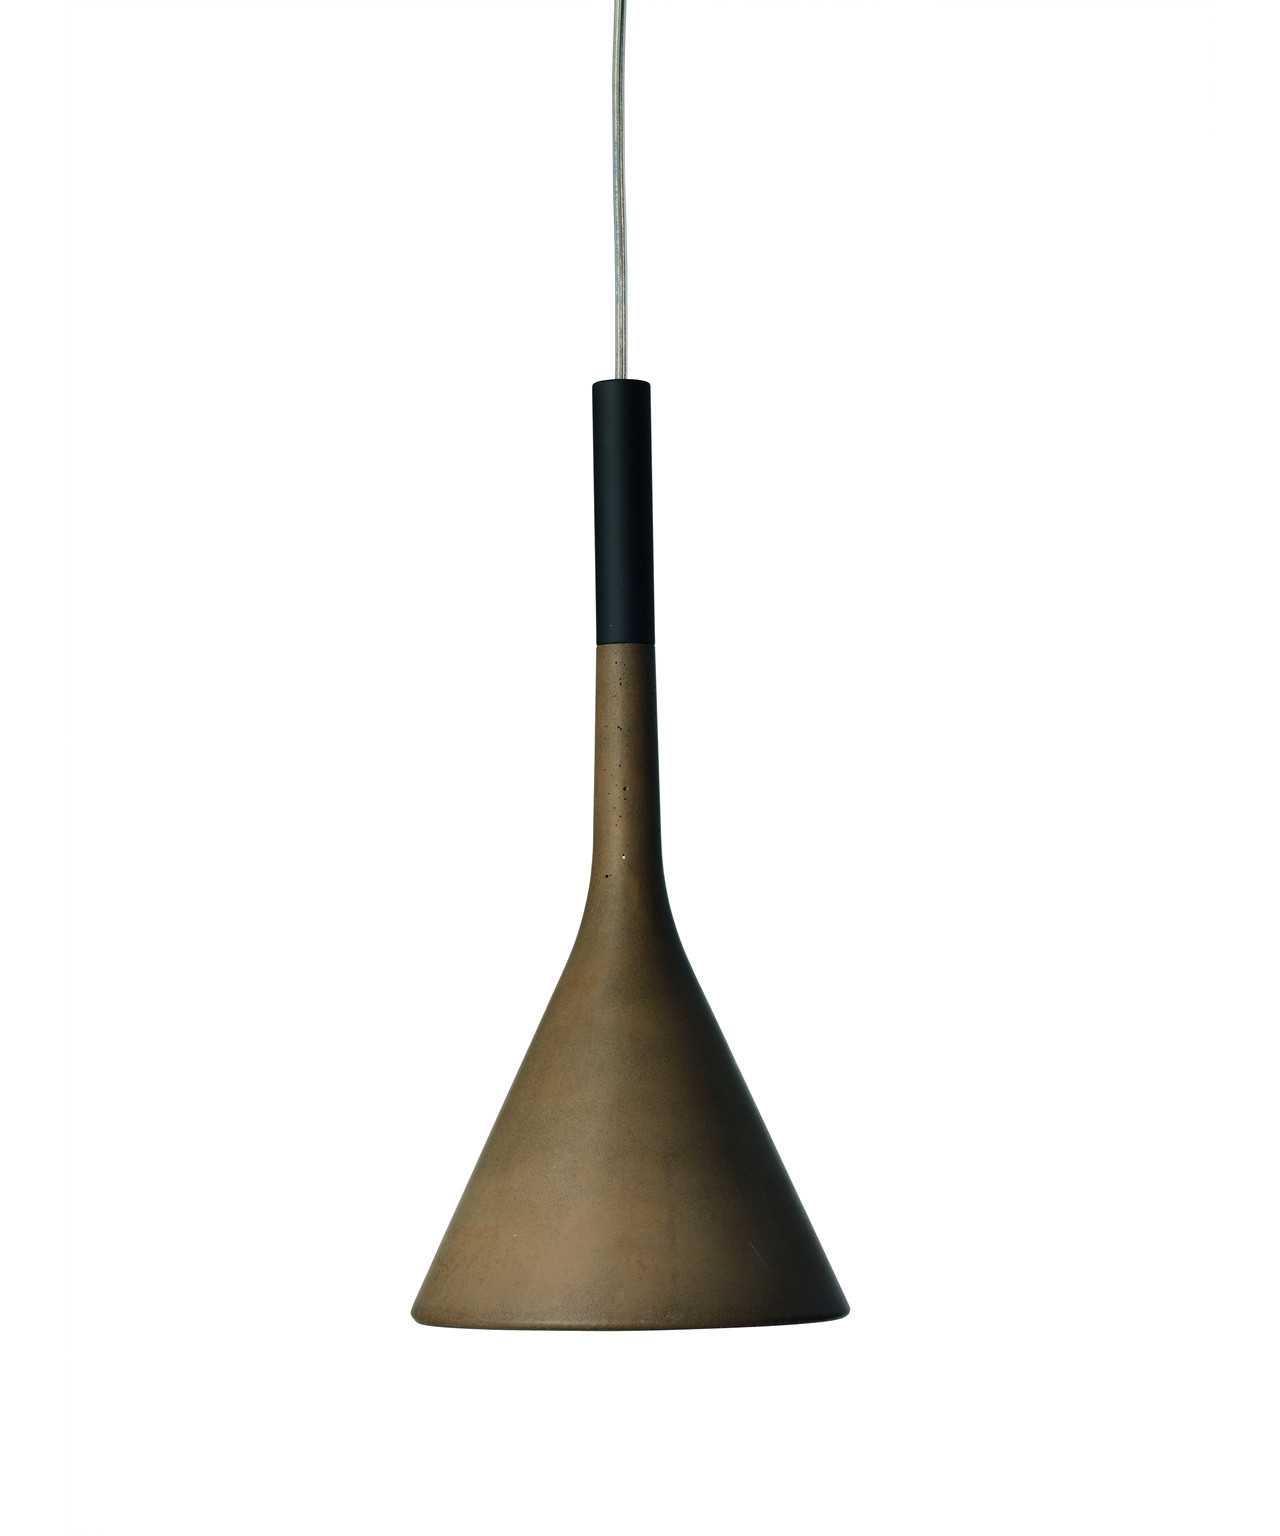 Image of   Aplomb LED Pendel Brun - Foscarini